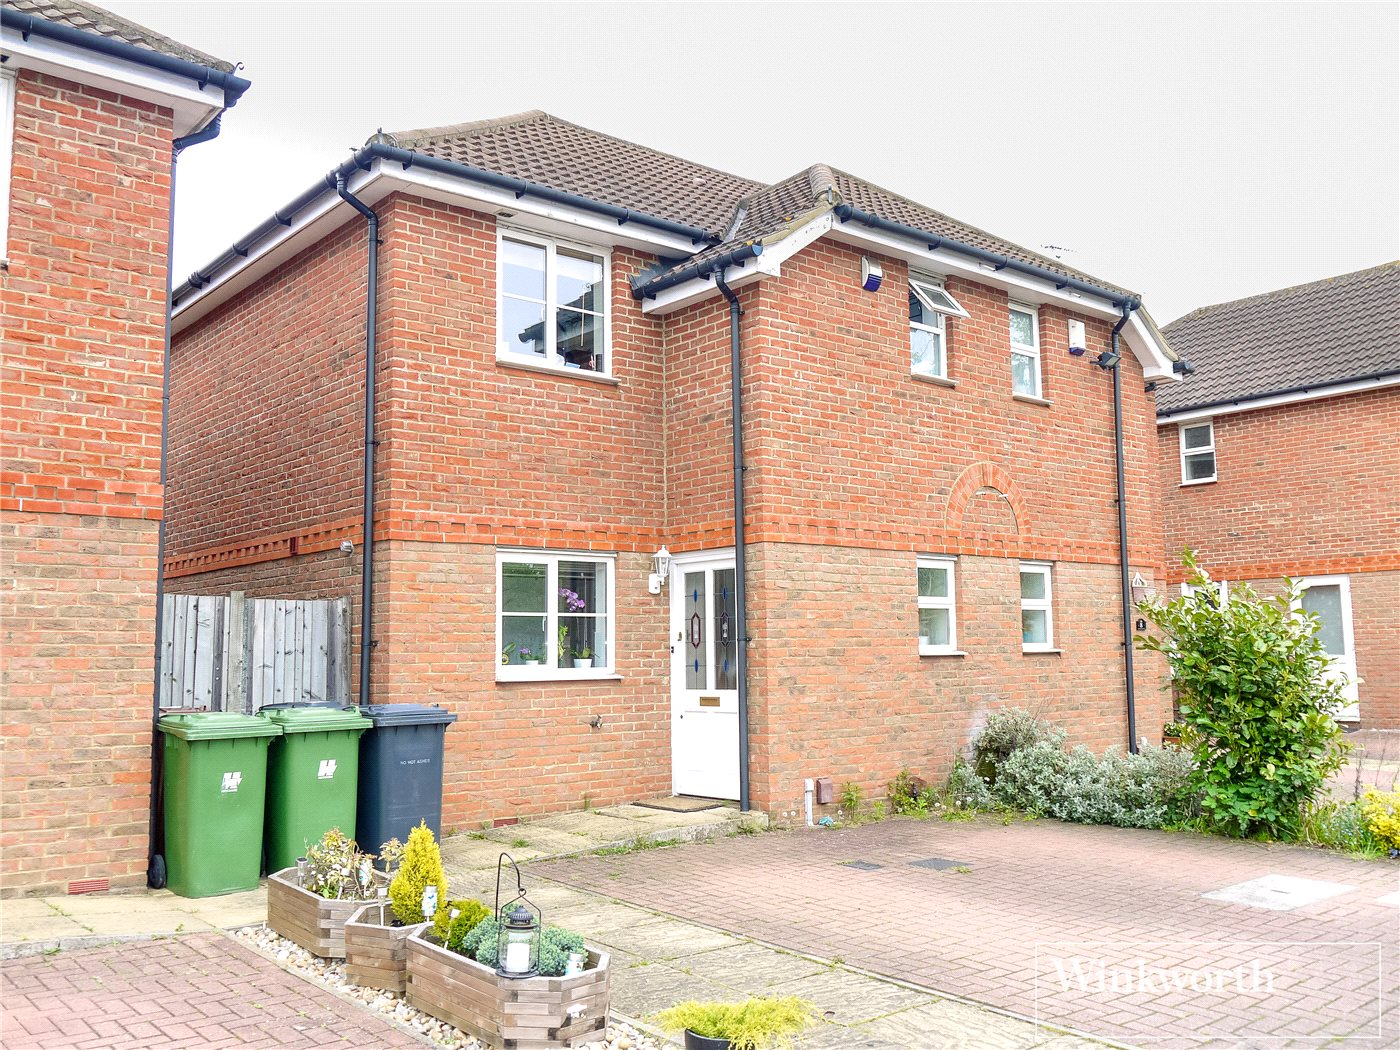 3 Bedrooms Semi Detached House for rent in Beechfield Close, Borehamwood, Herts, WD6